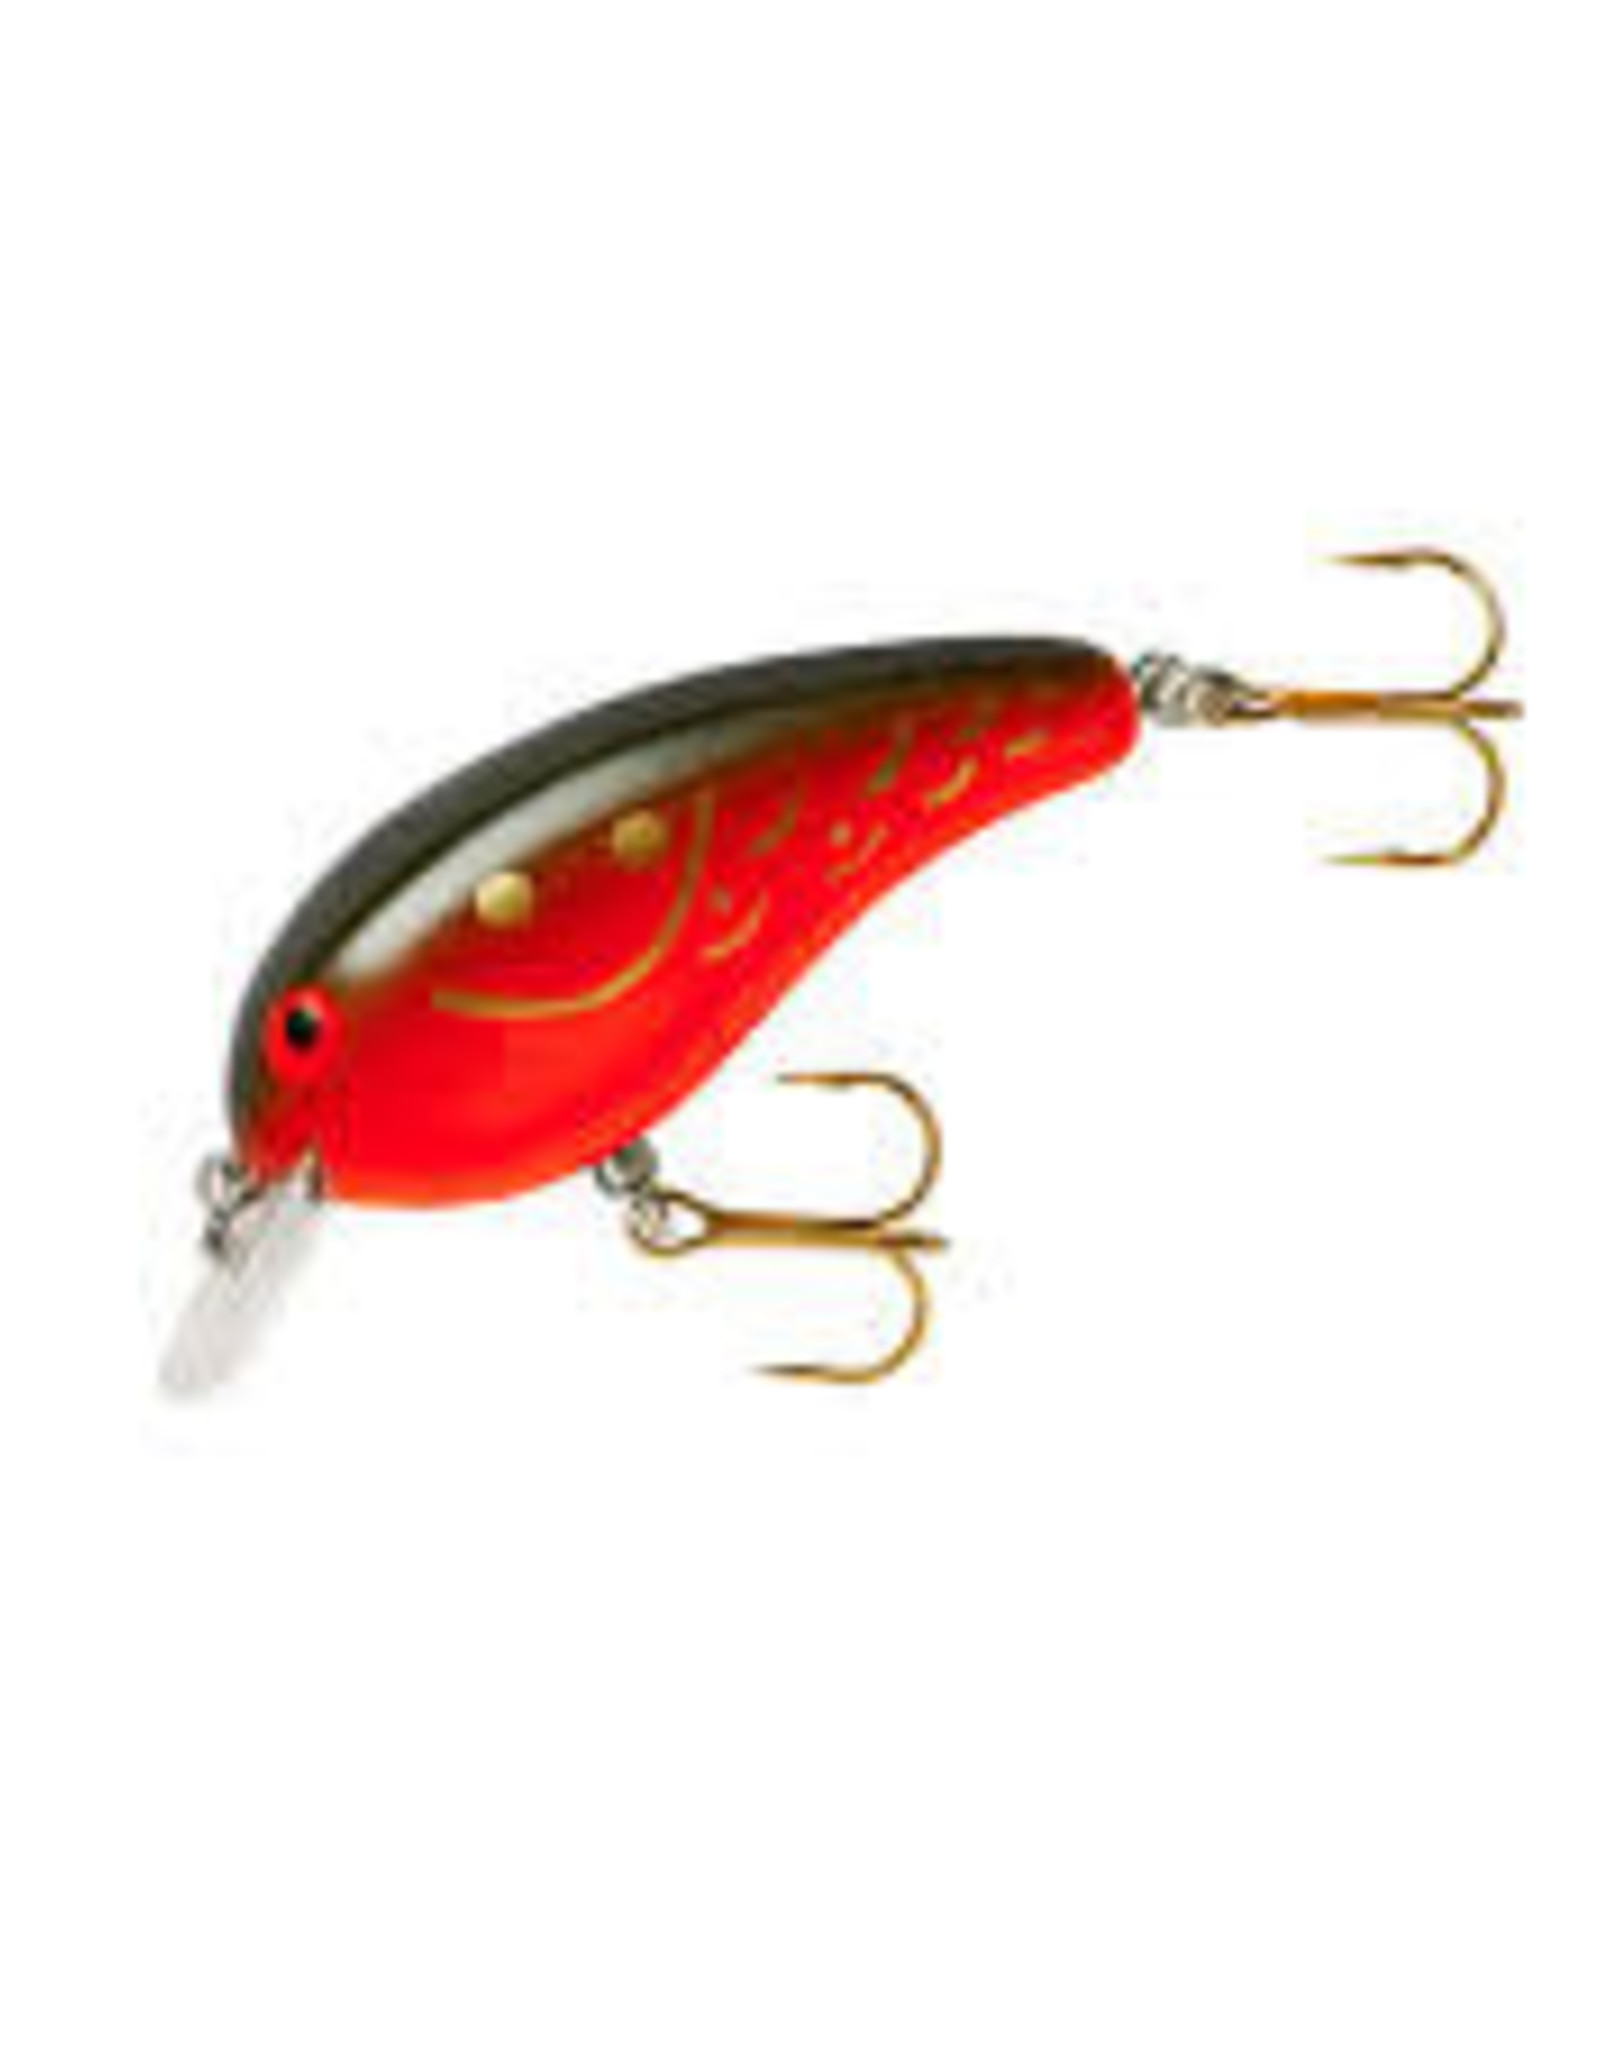 COTTON CORDELL Cotton Cordell Big O Olive Craw 2 1/4 in